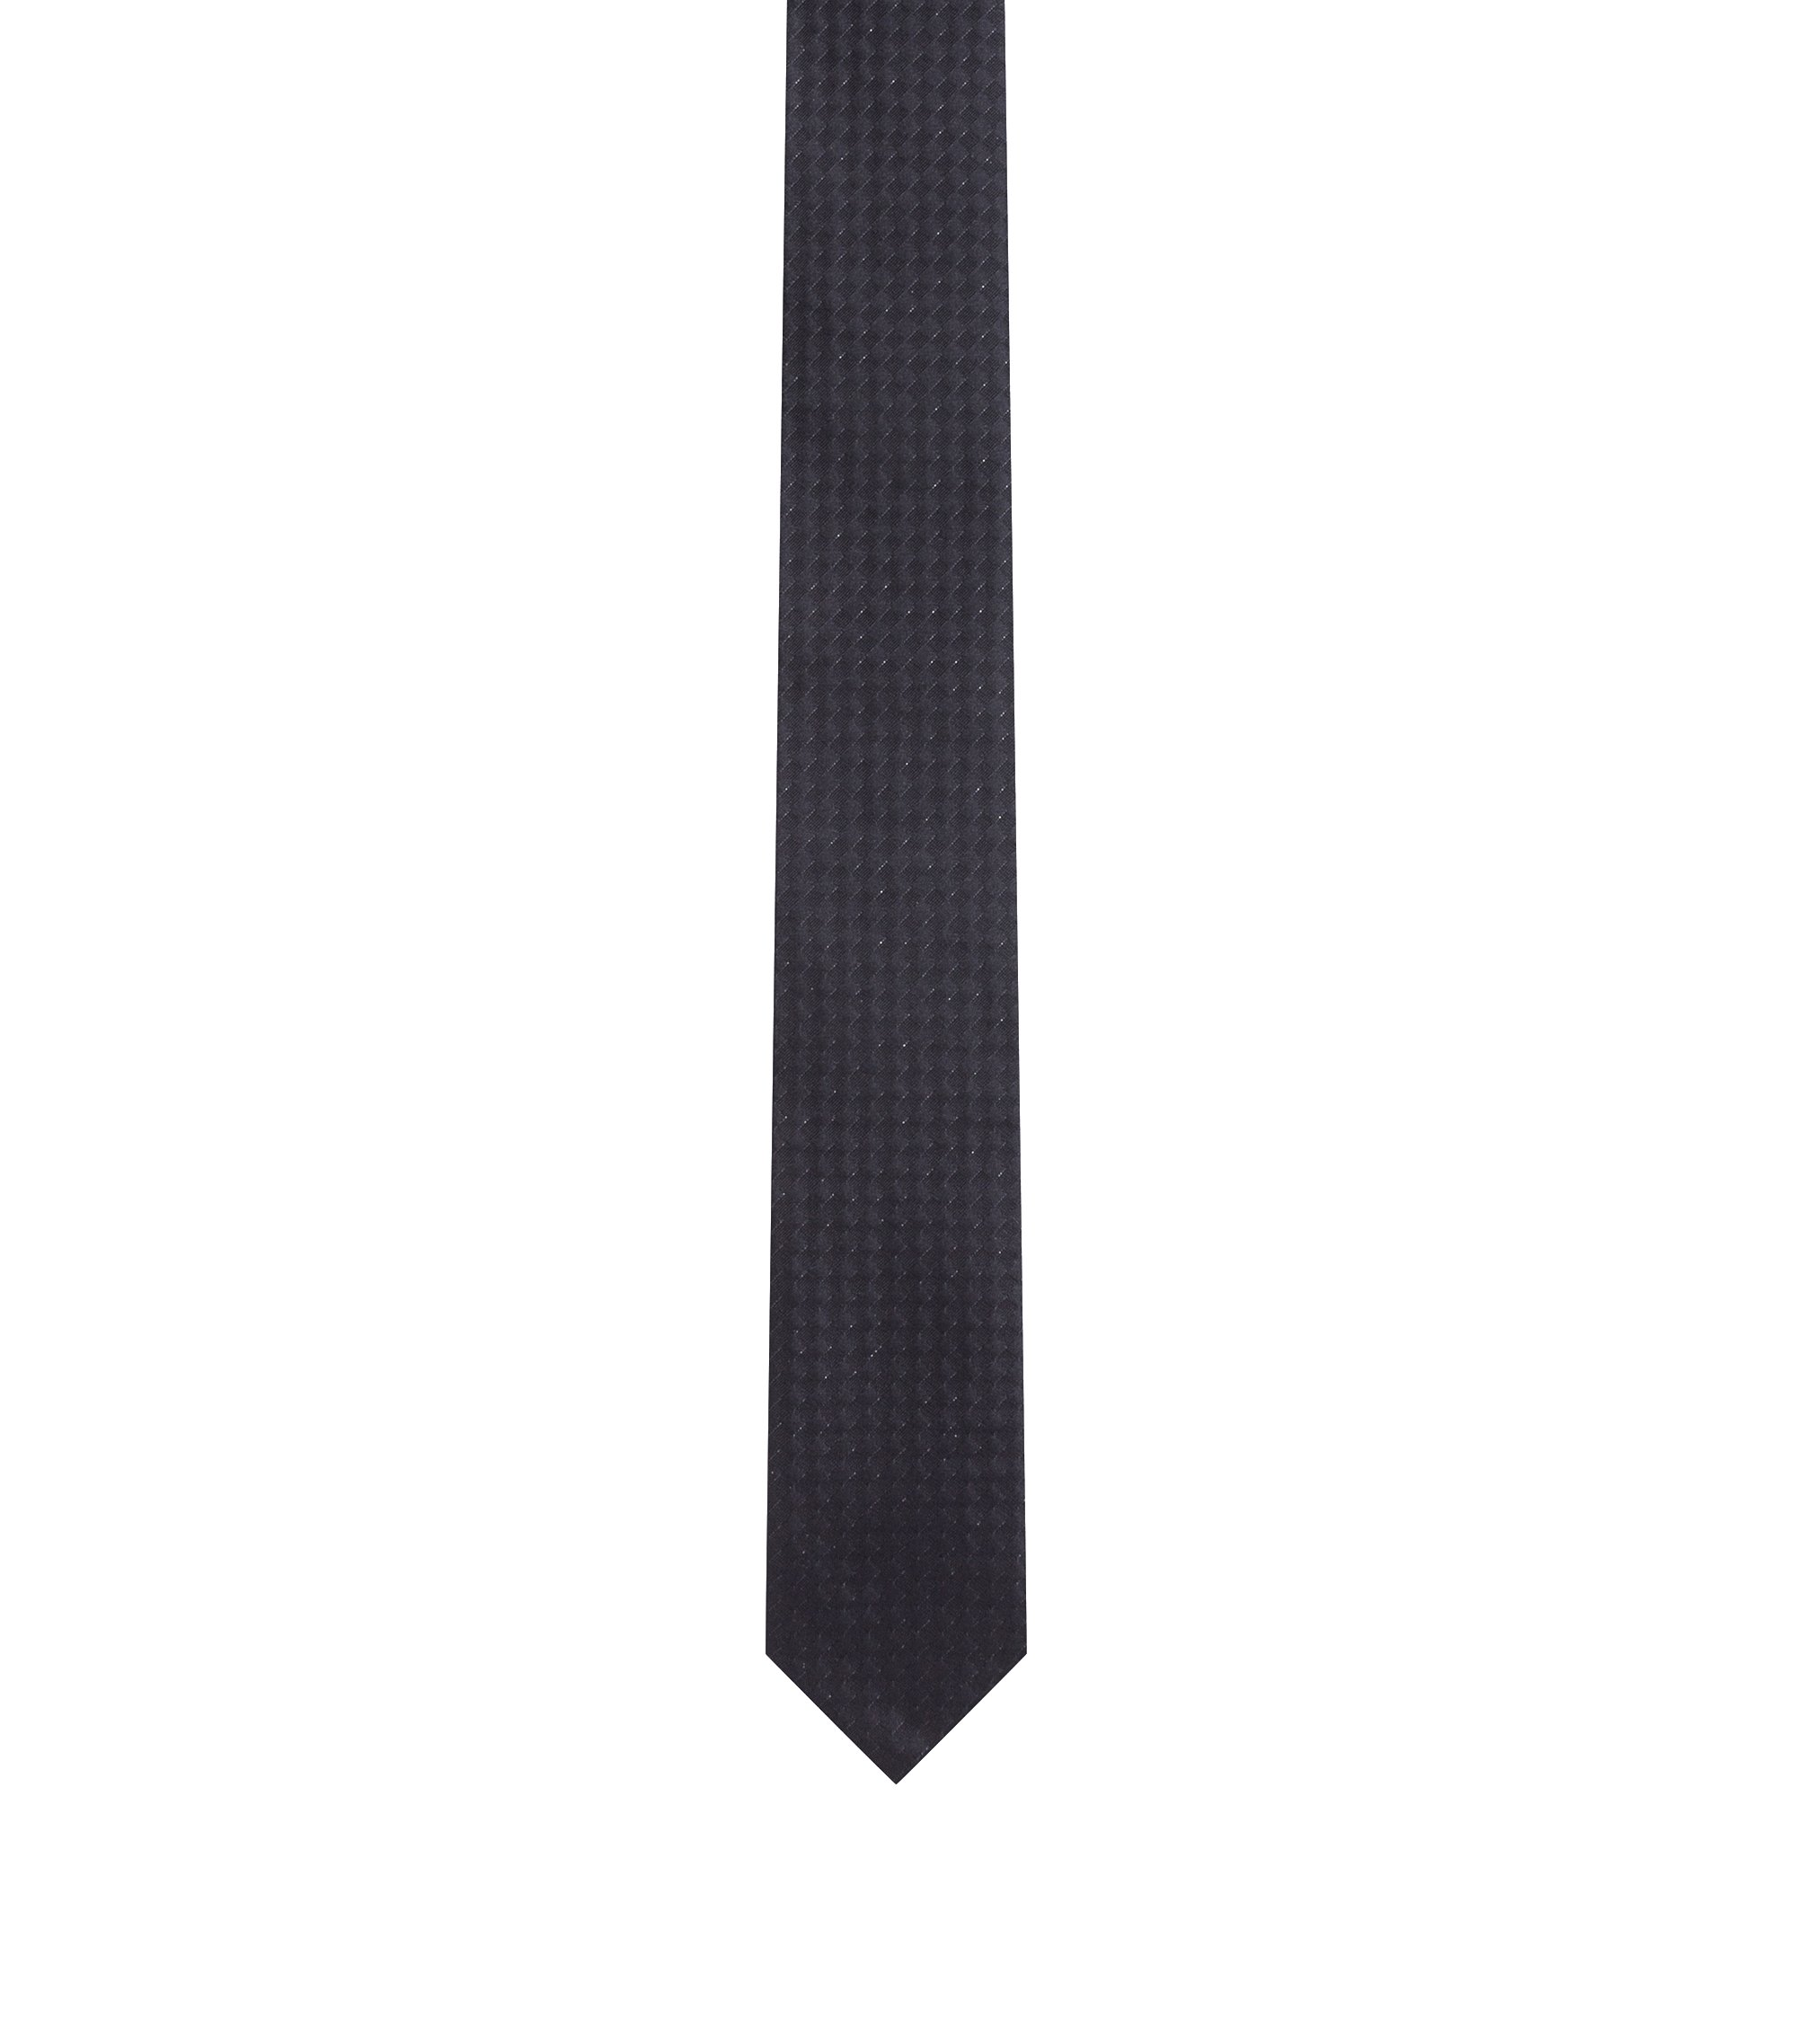 Stretch Silk Slim Tie, Black